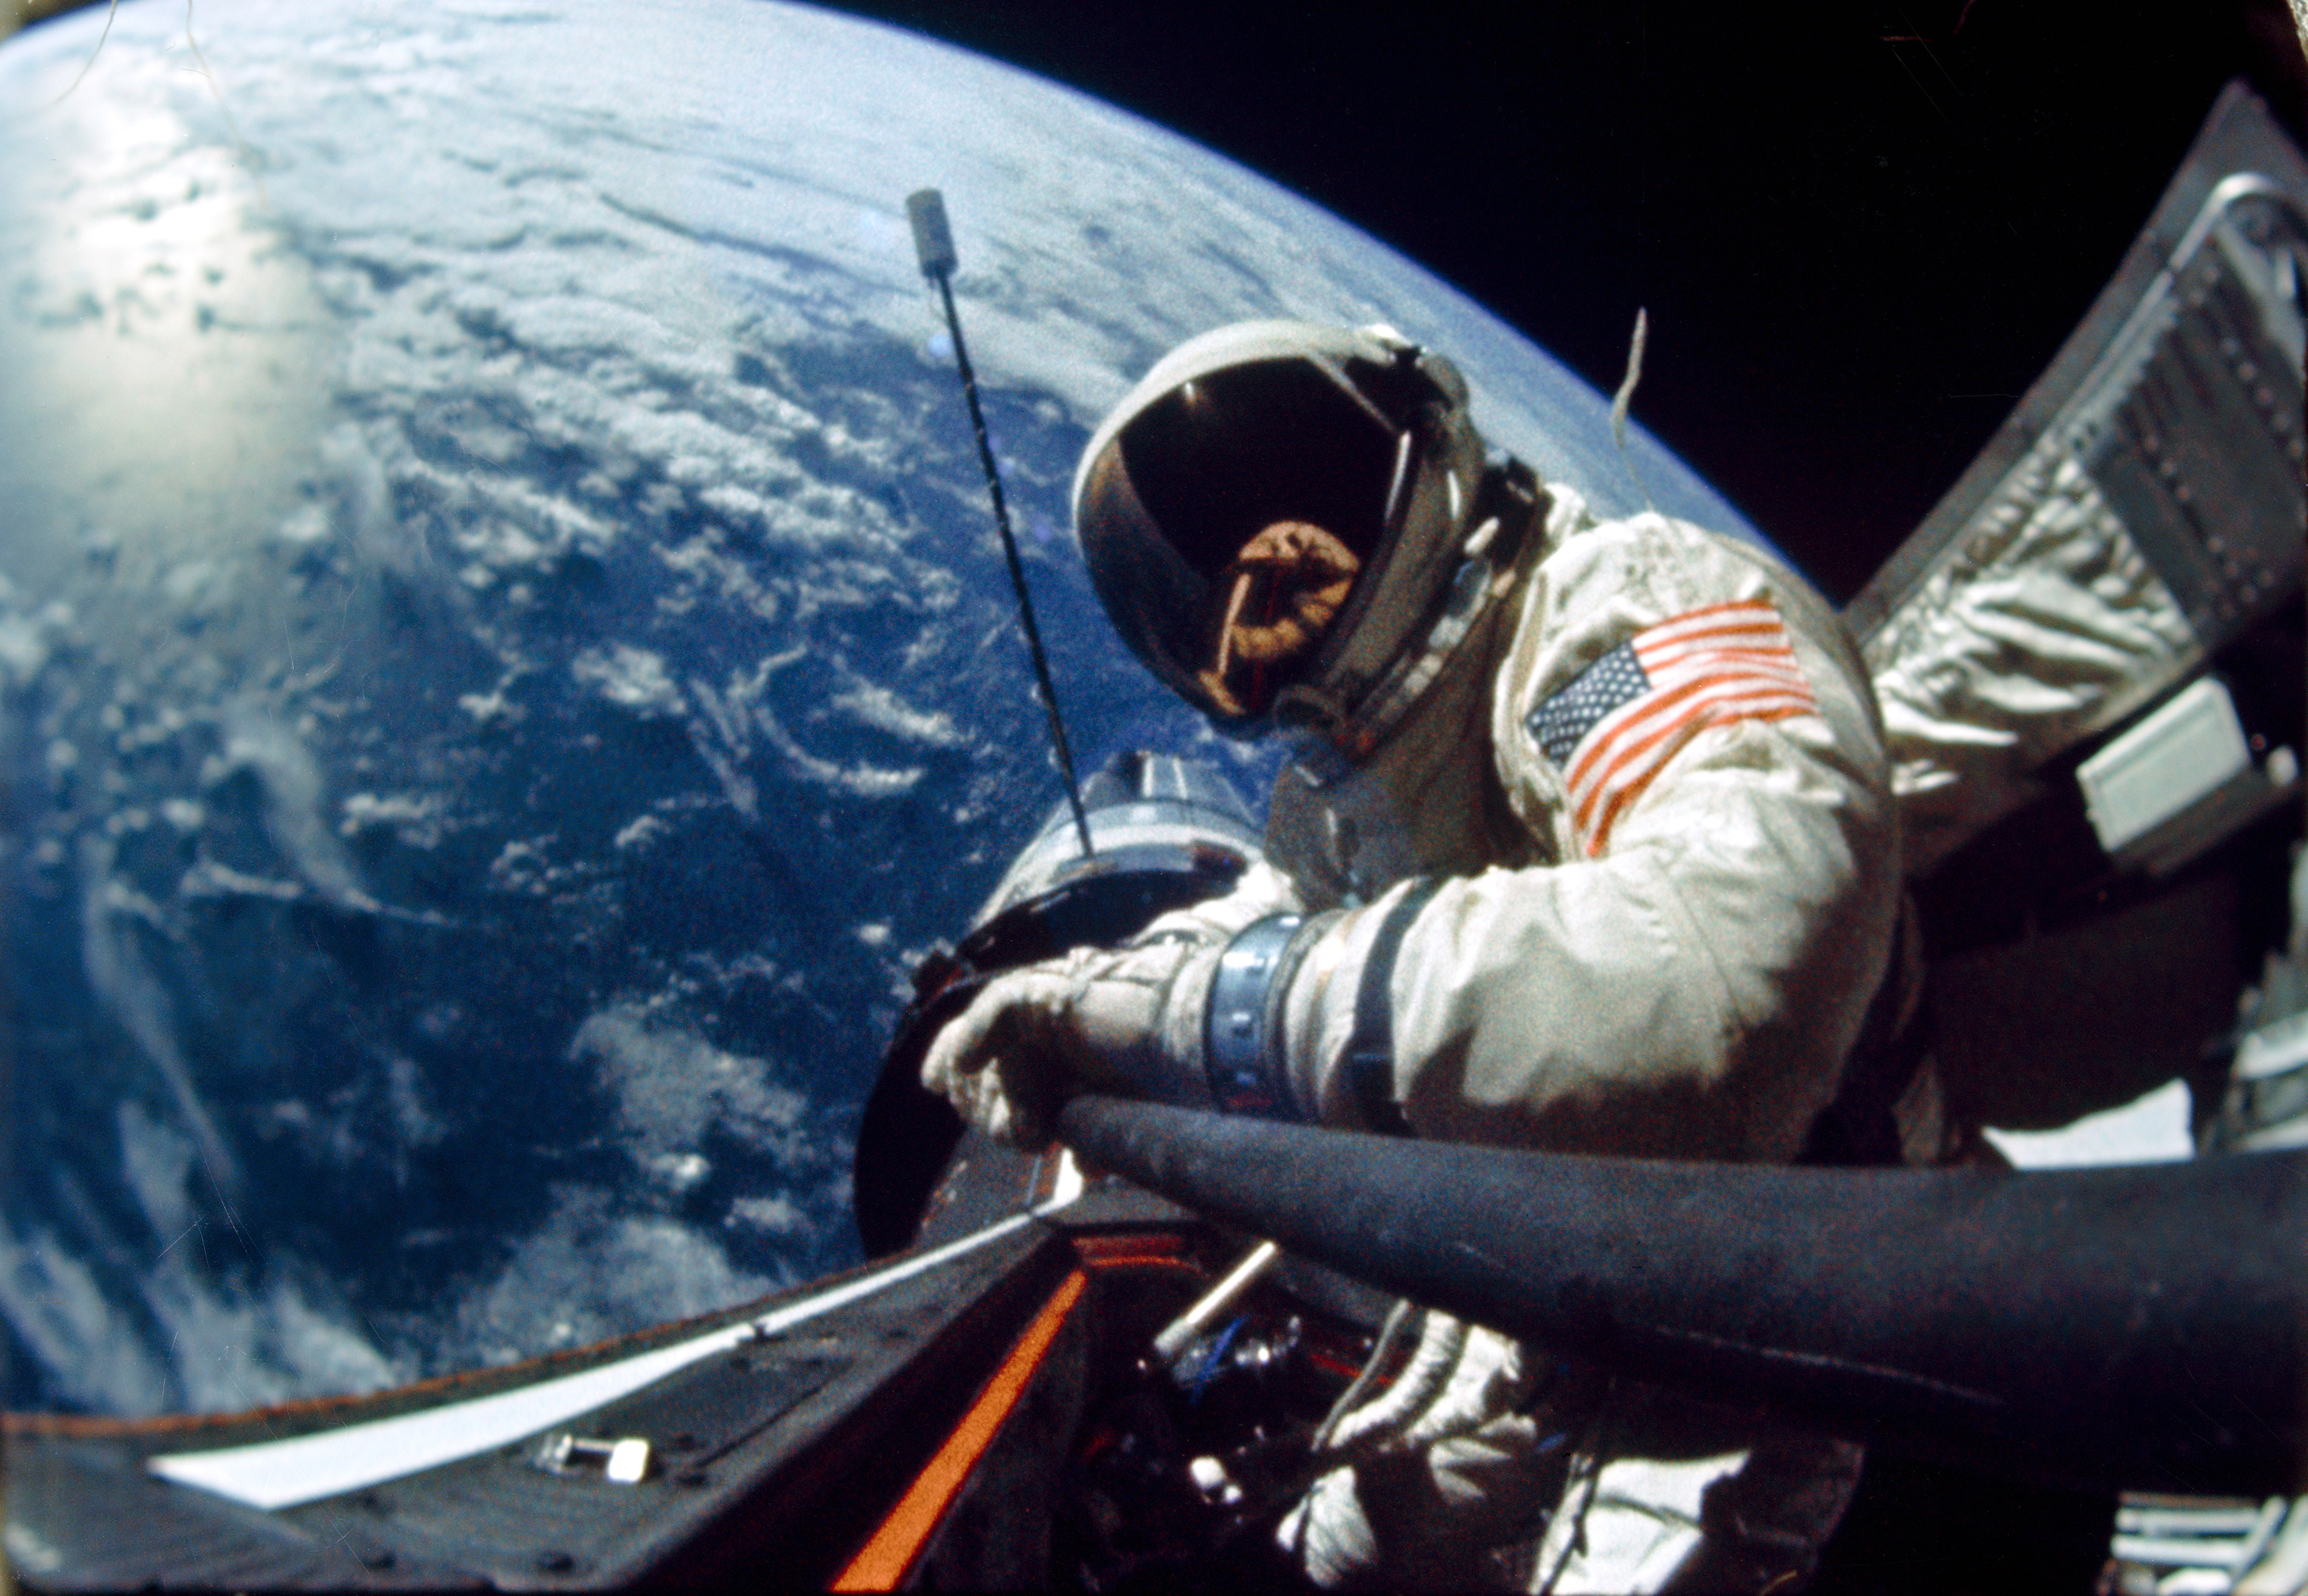 Buzz Aldrin performs an EVA during the Gemini XII mission. The Agena Target Vehicle is visible in the background. Credit: NASA